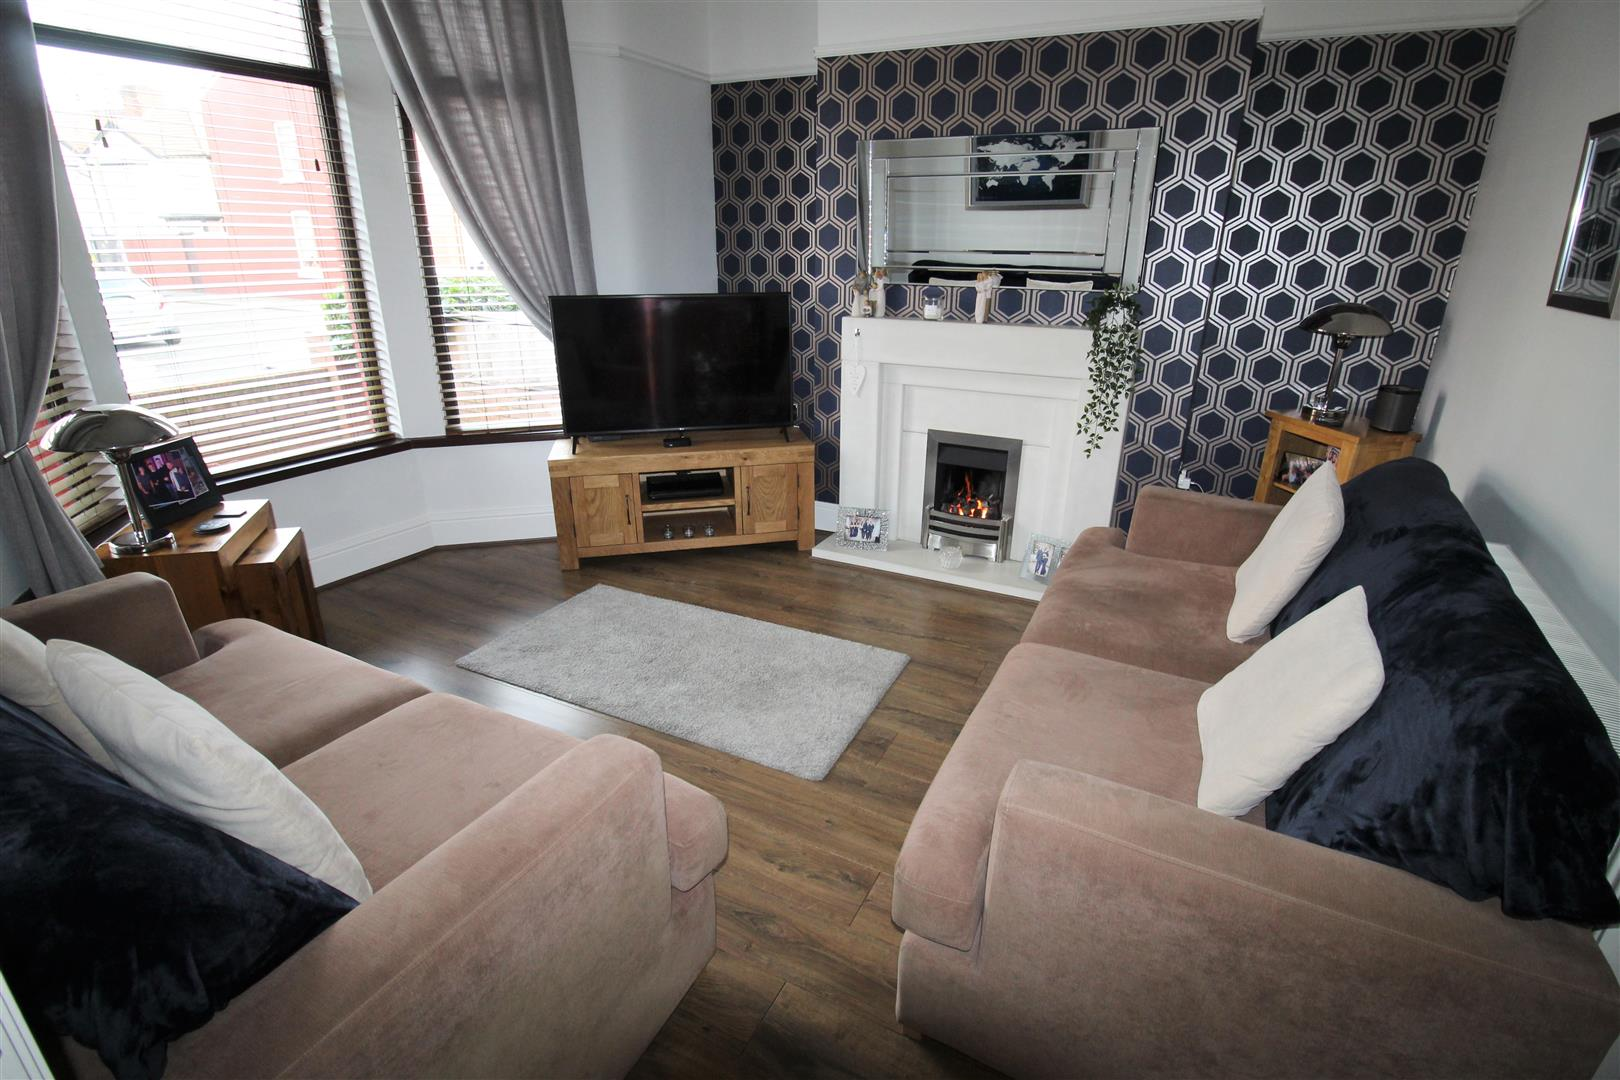 4 Bedrooms, House - Mid Terrace, Wyresdale Road, Aintree, Liverpool